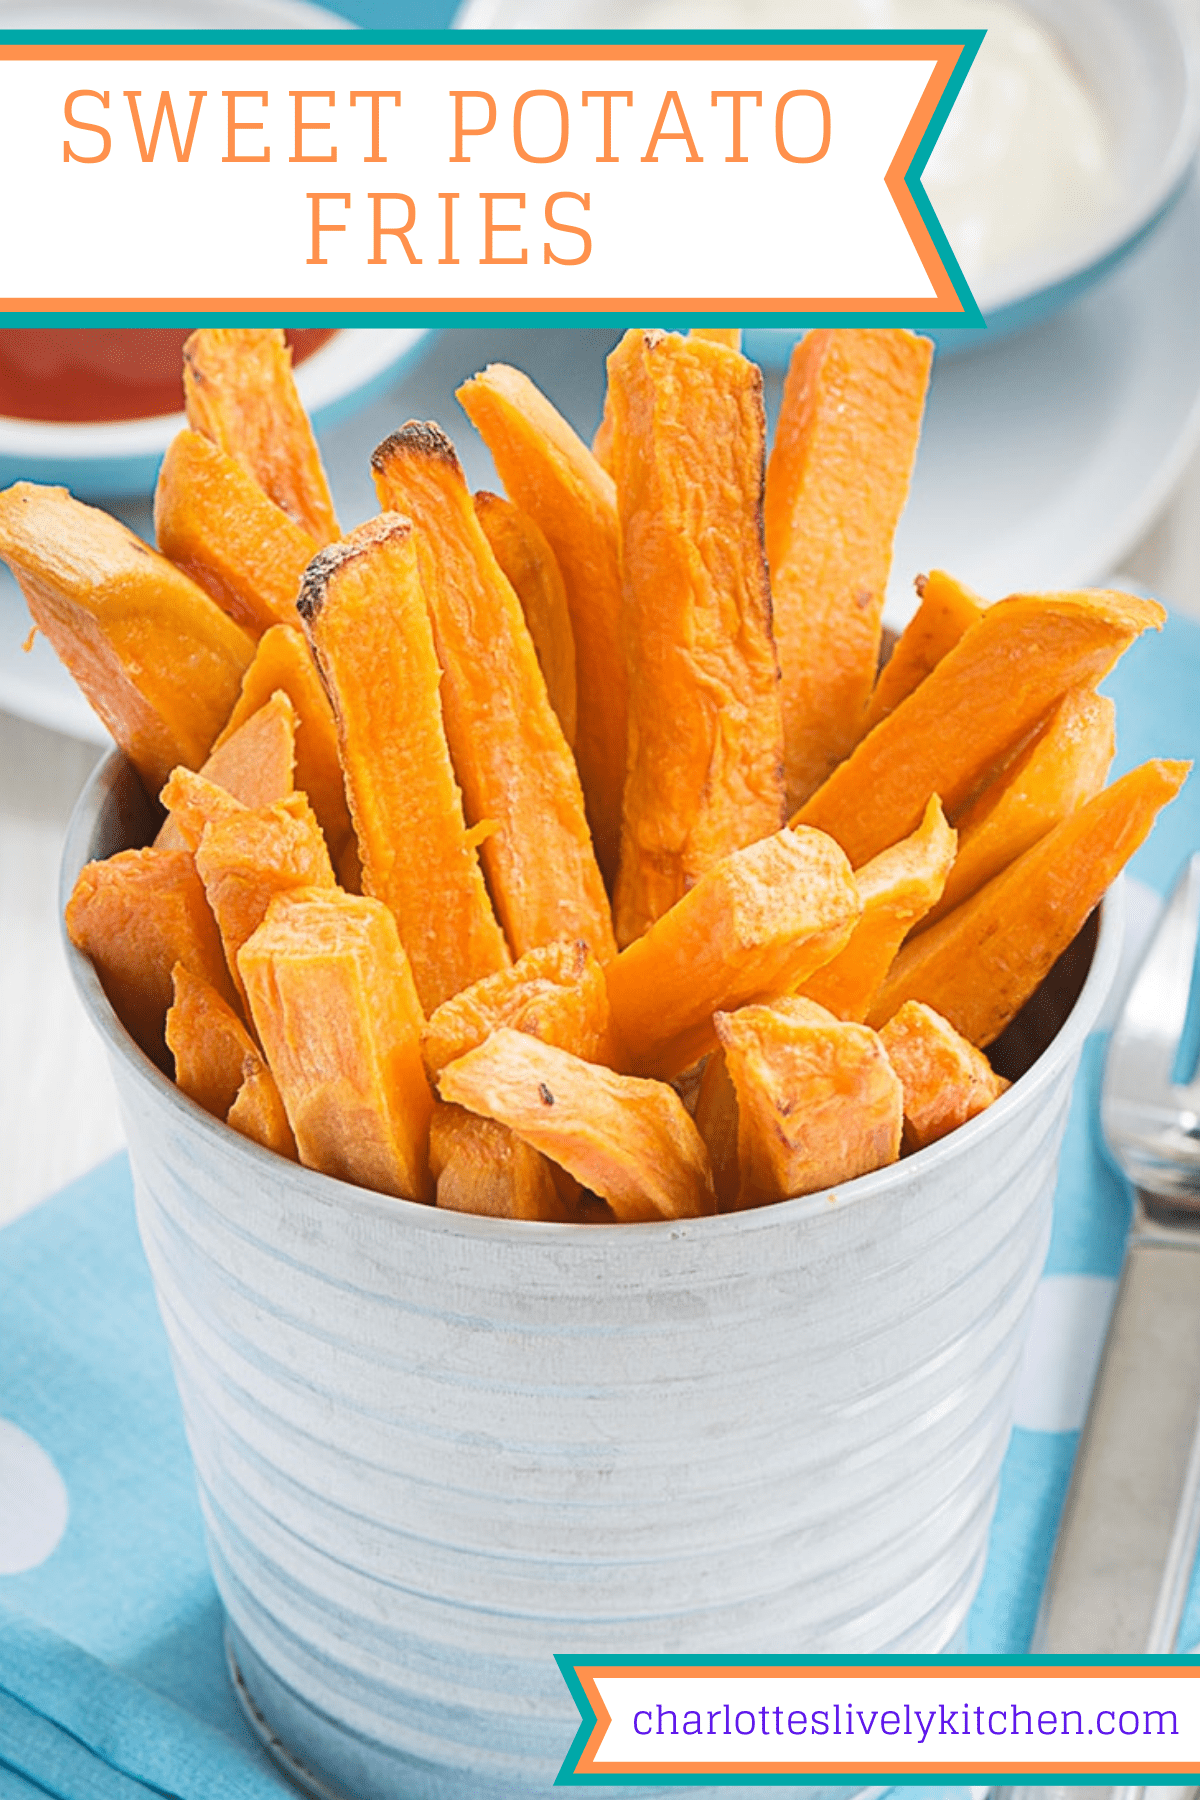 Pinterest graphic showing a full size image of the cooked sweet potato fries in a metal pot with the recipe name written over along with the website name at the bottom.